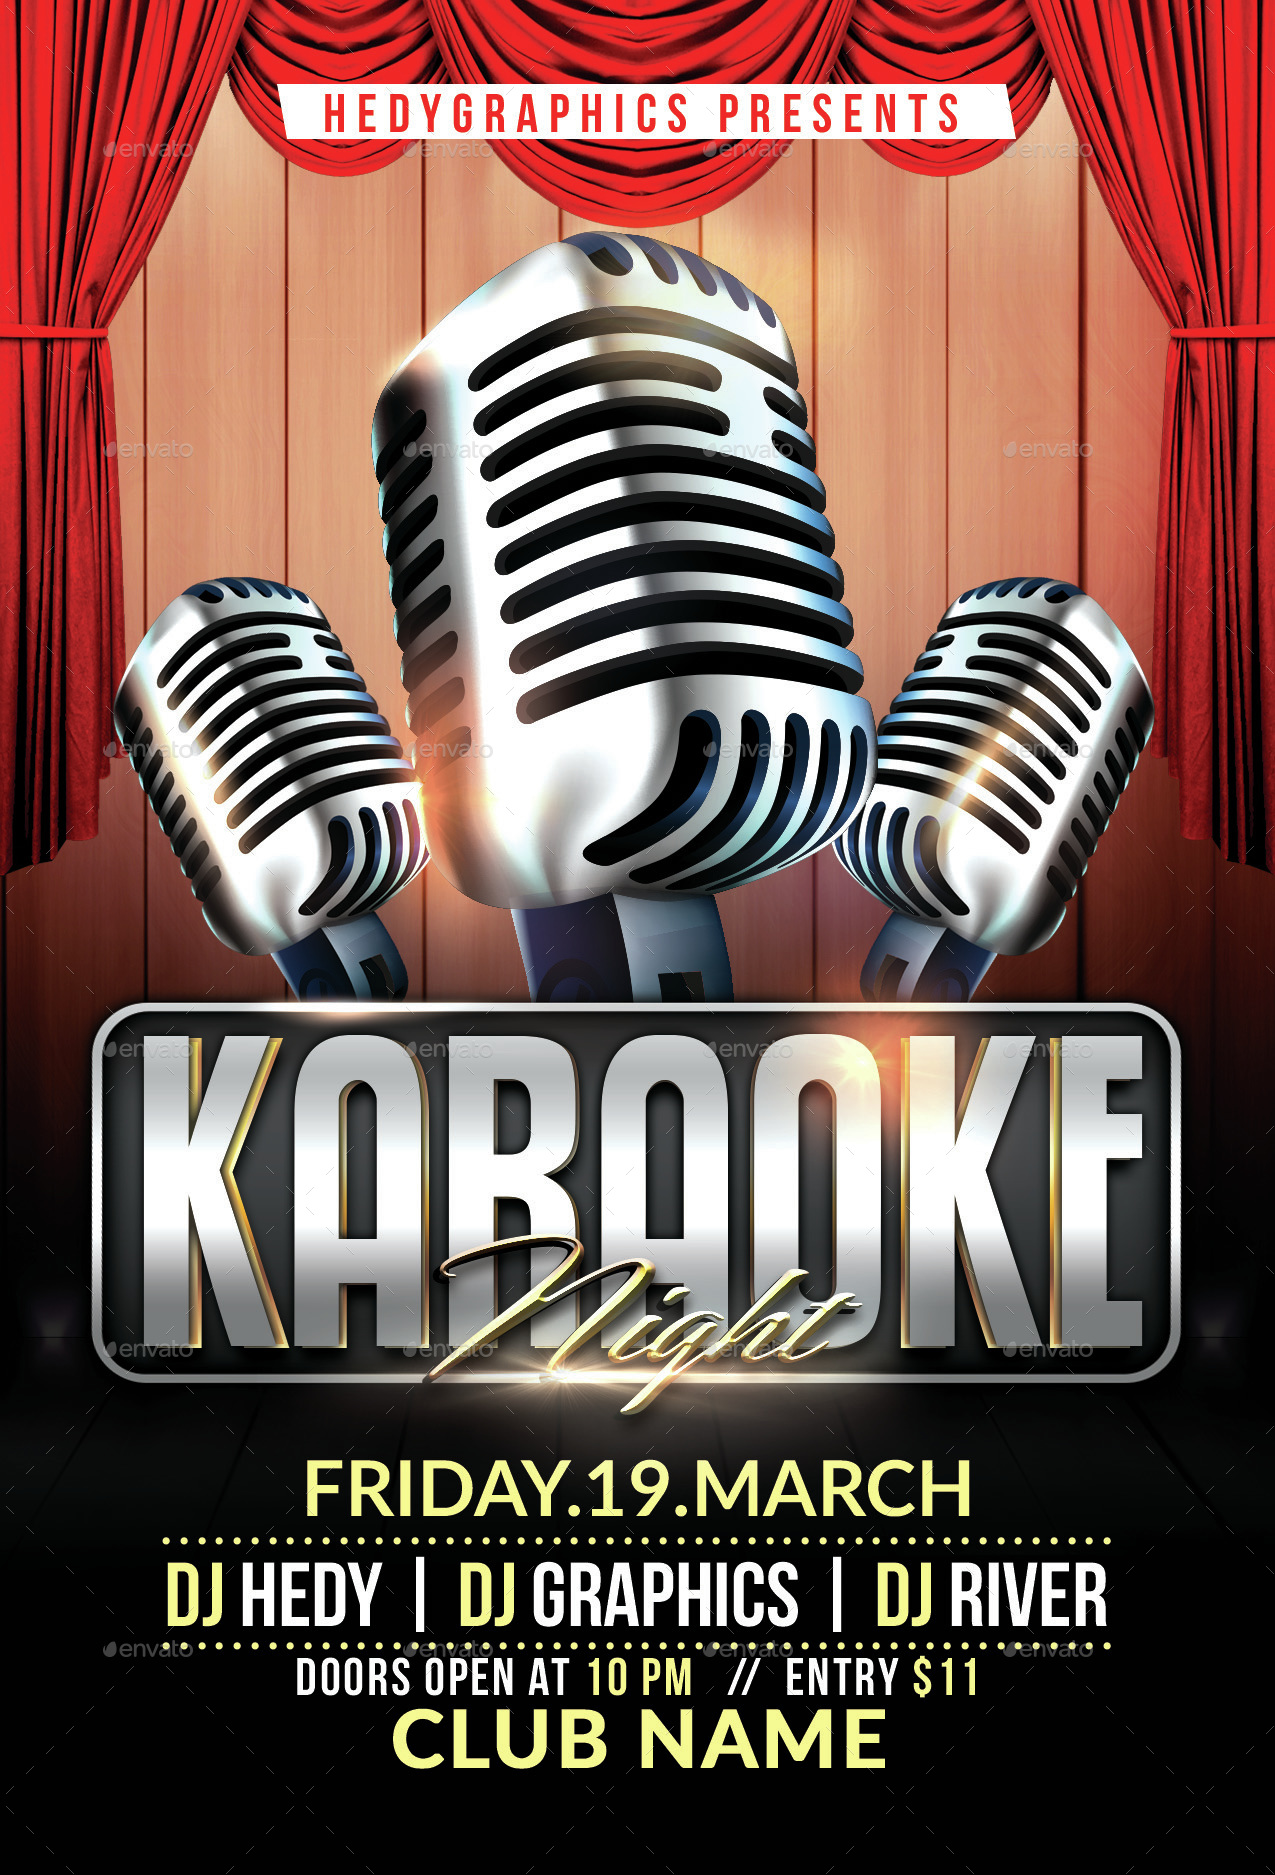 Karaoke Flyer Template By Hedygraphics Graphicriver